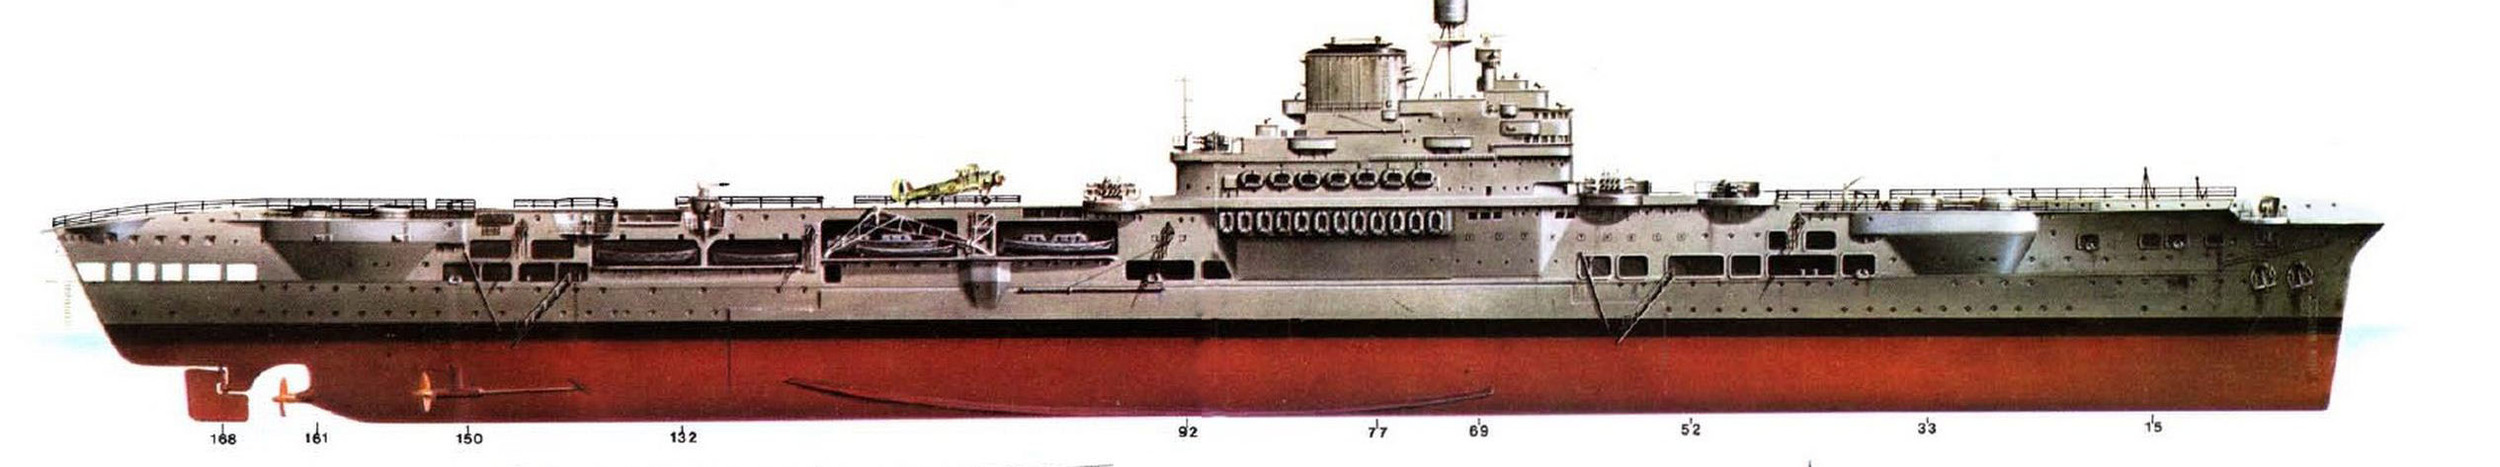 HMS ILLUSTRIOUS in her original 1940 overall grey guise, starboard profile.